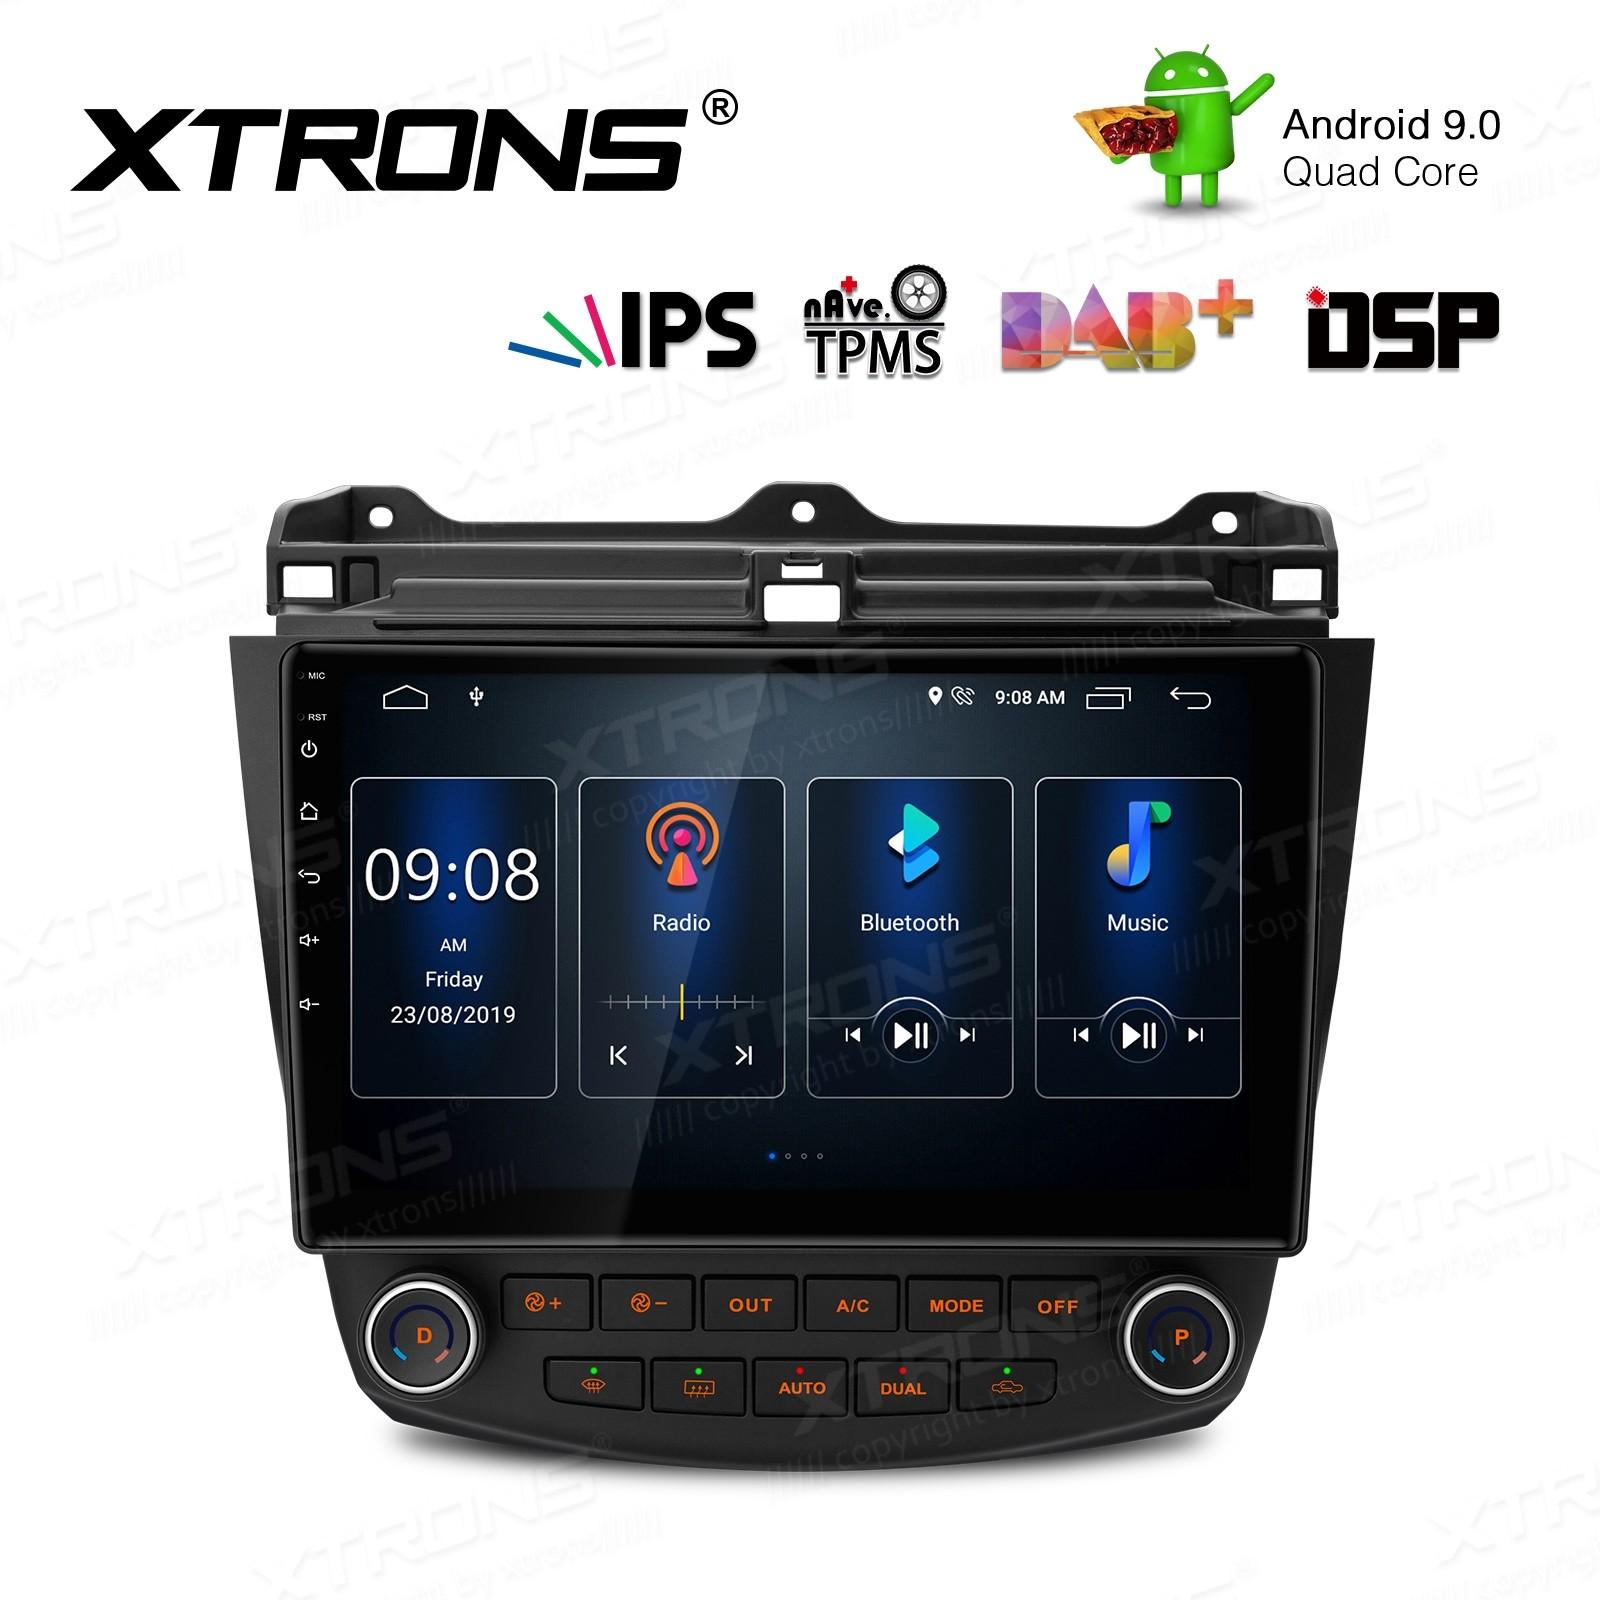 10.1 inch Android 9.0 IPS Screen with Built-in DSP Navigation Multimedia Player Fit for Honda (Fit Left Hand Vehicles ONLY)